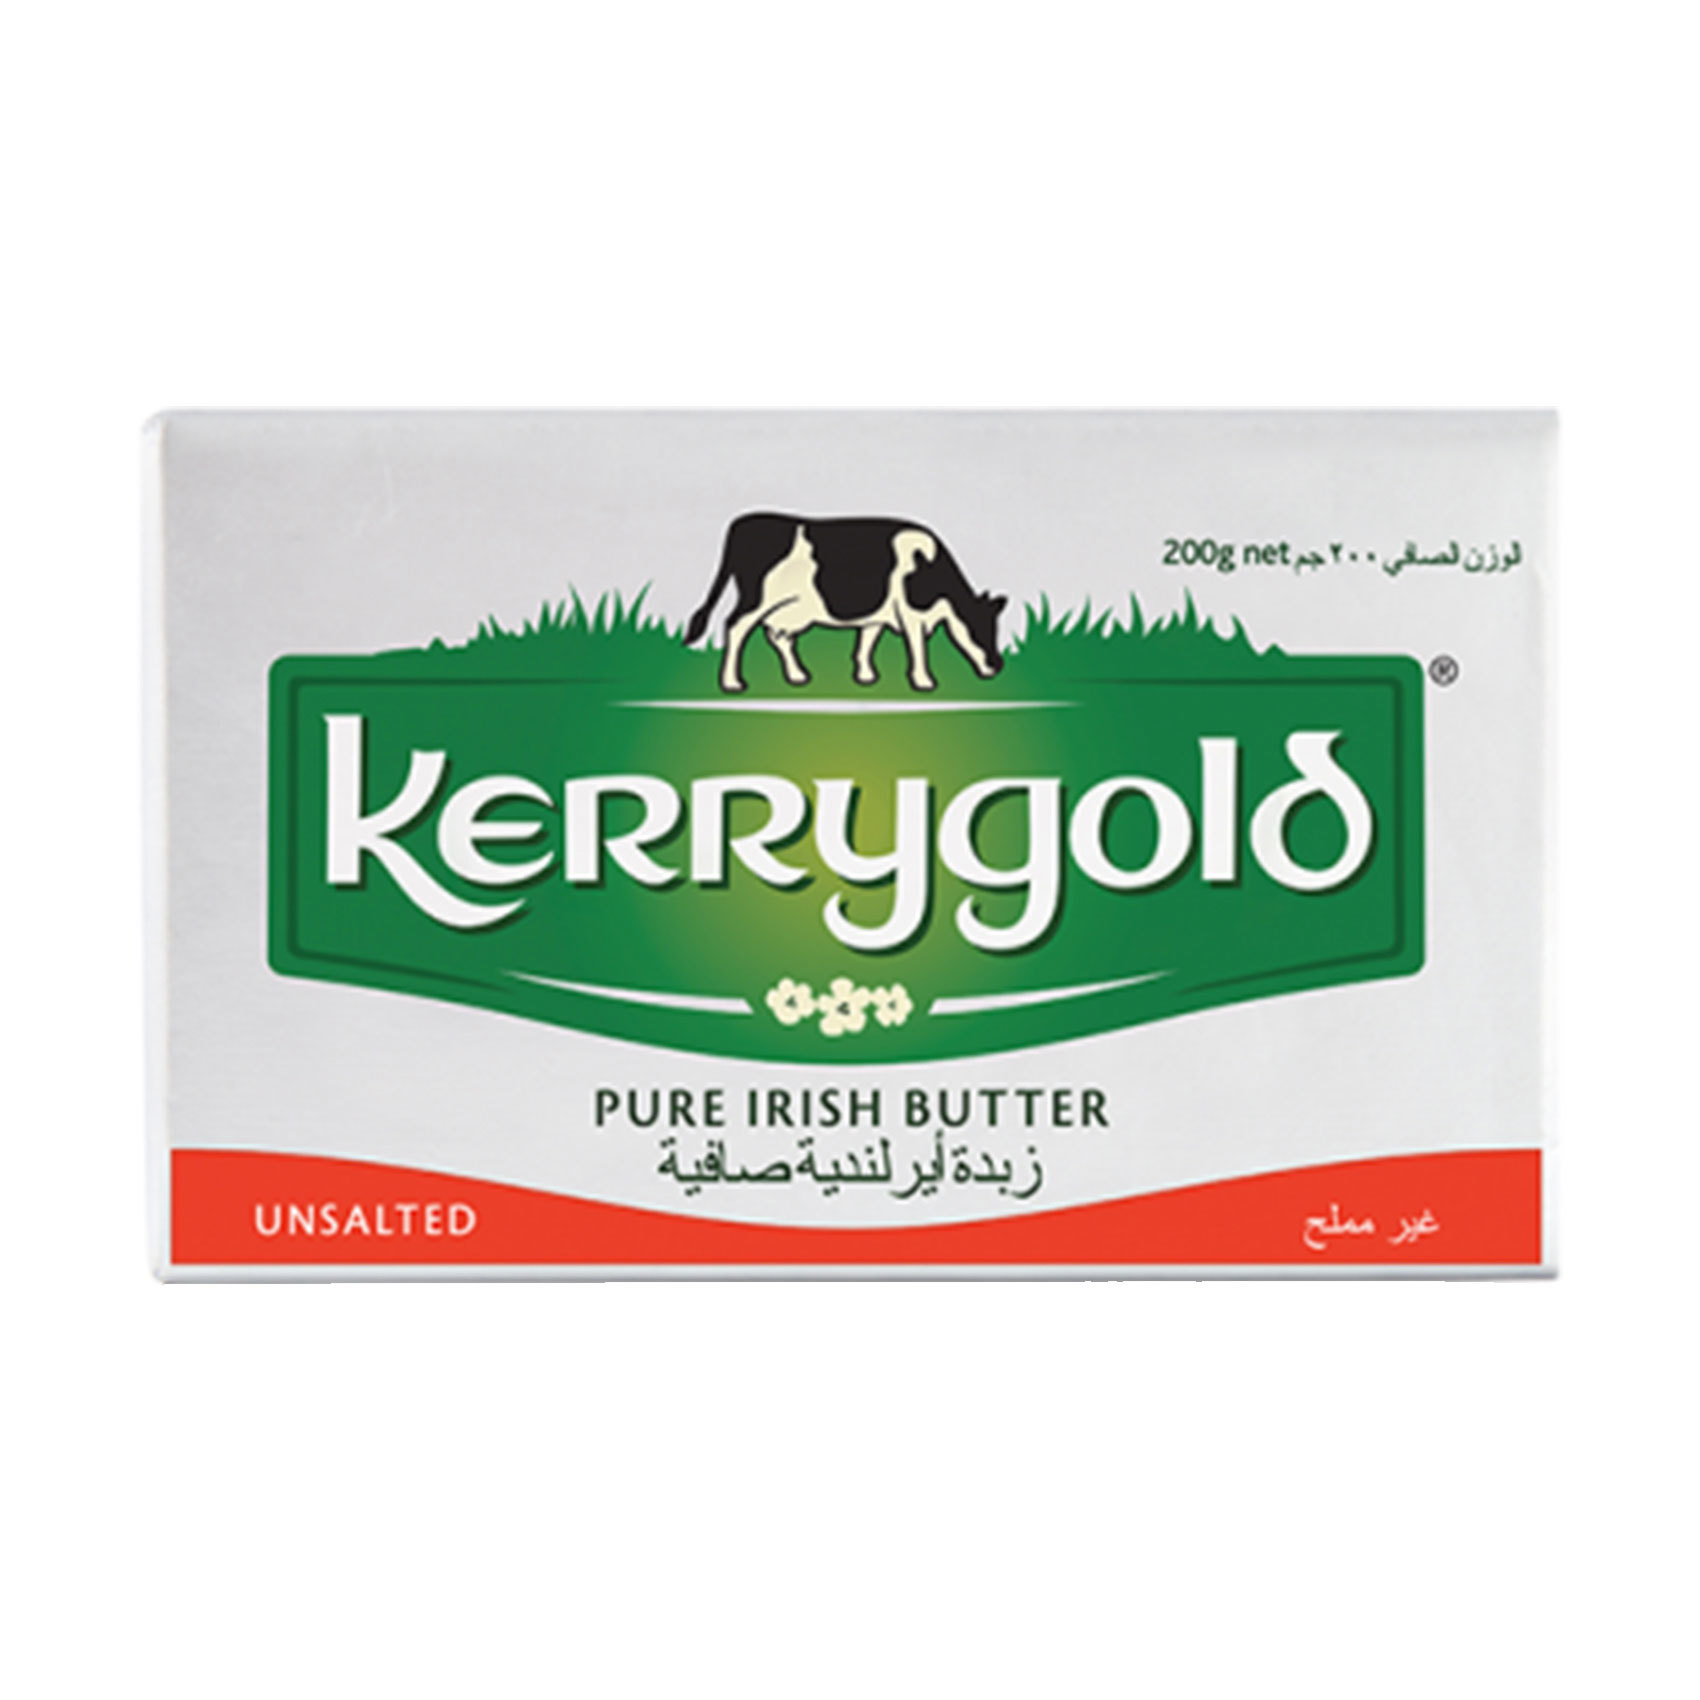 KERRY GOLD BUTTER UNSALTED 227 G